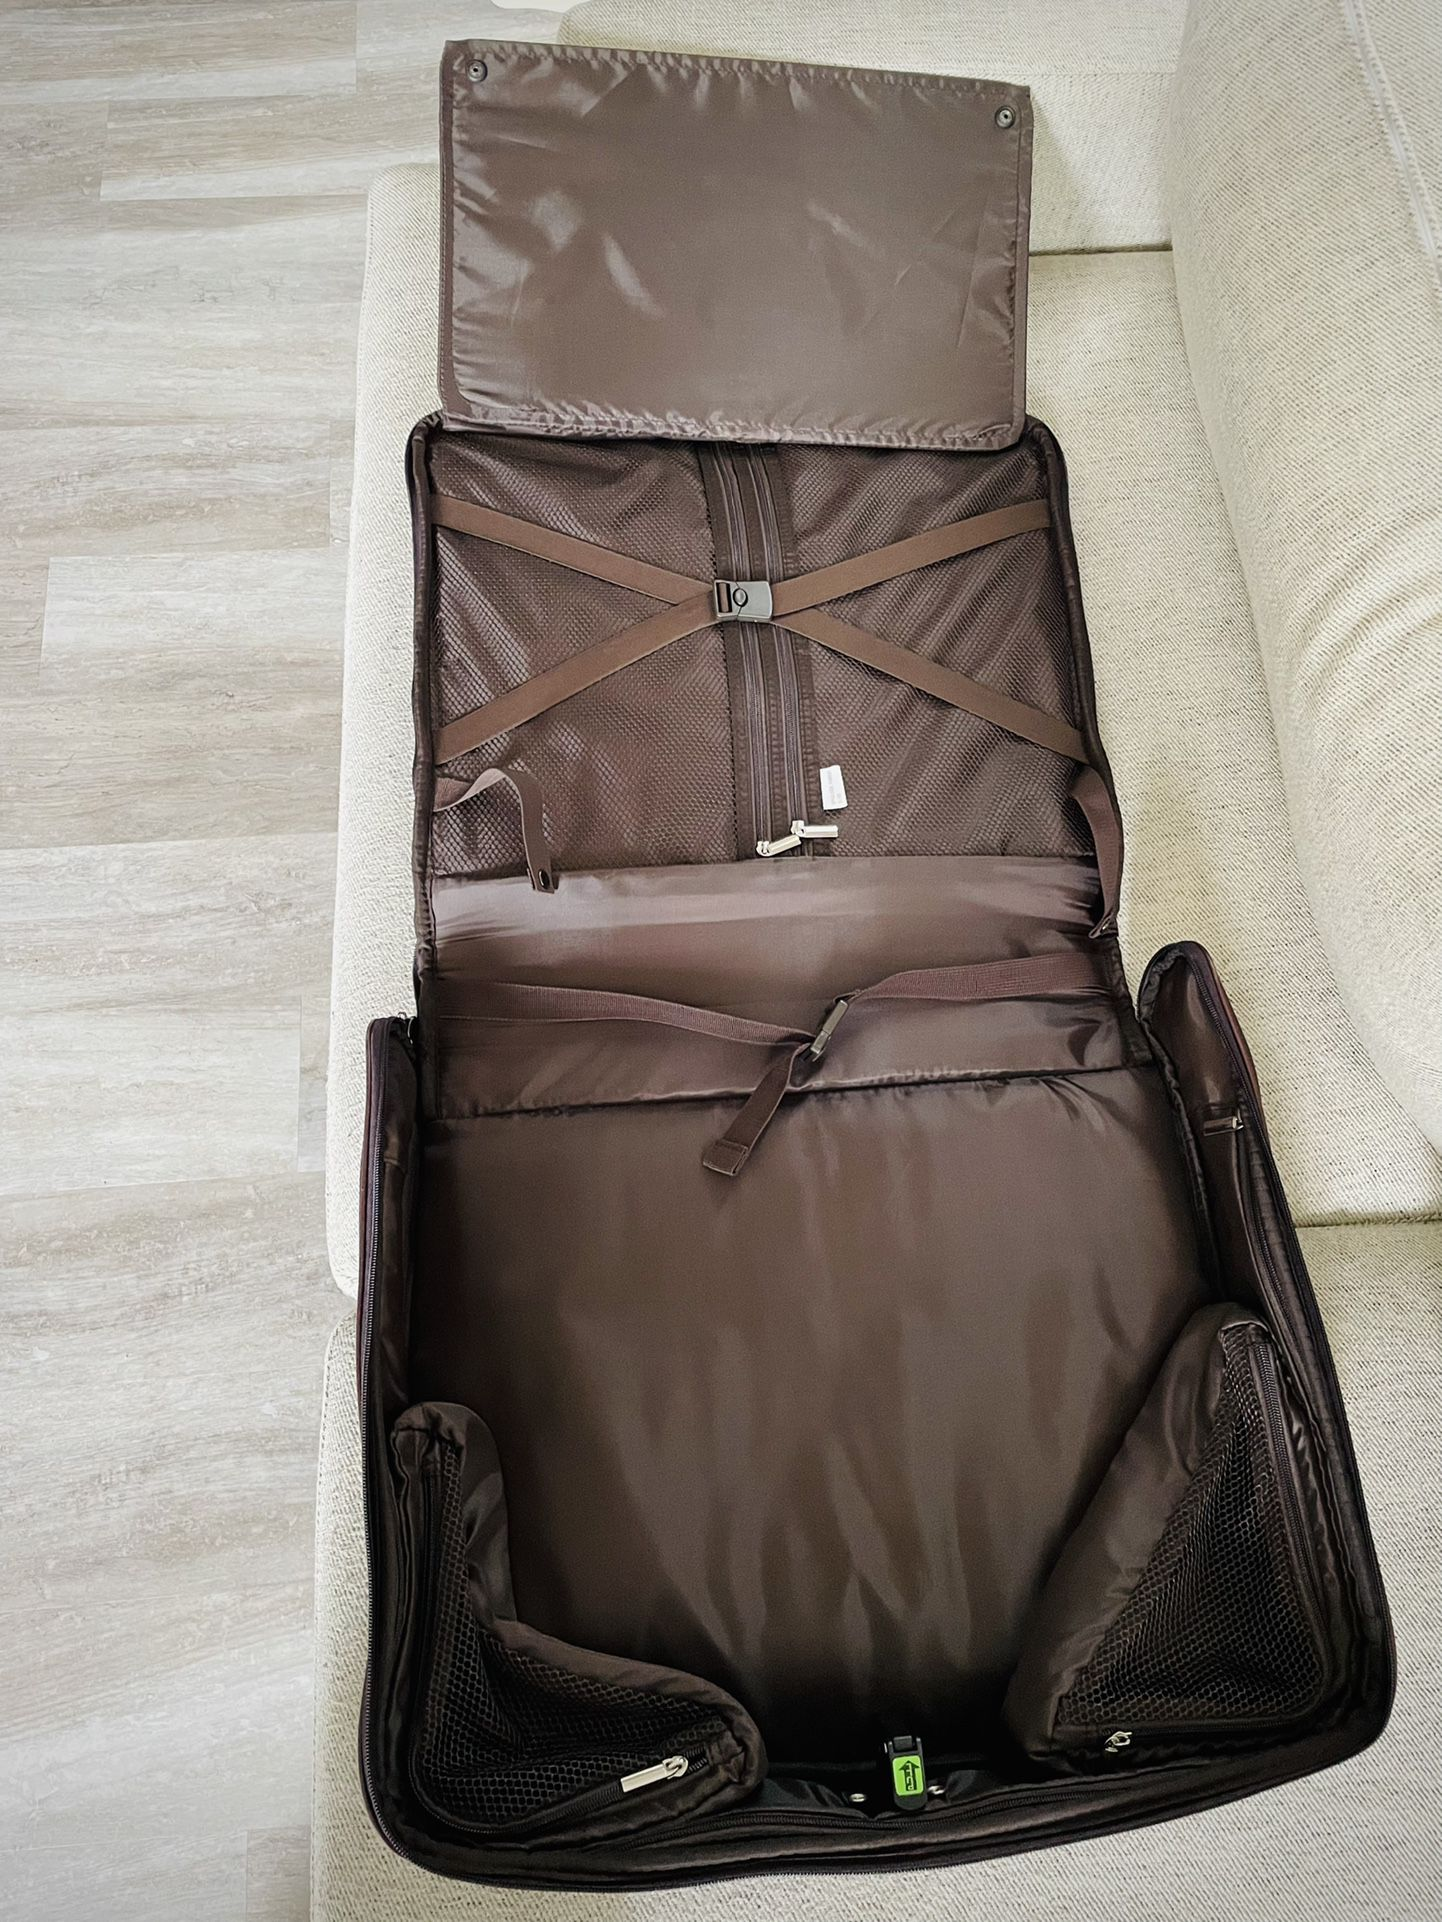 Suit Carrying Travel Luggage